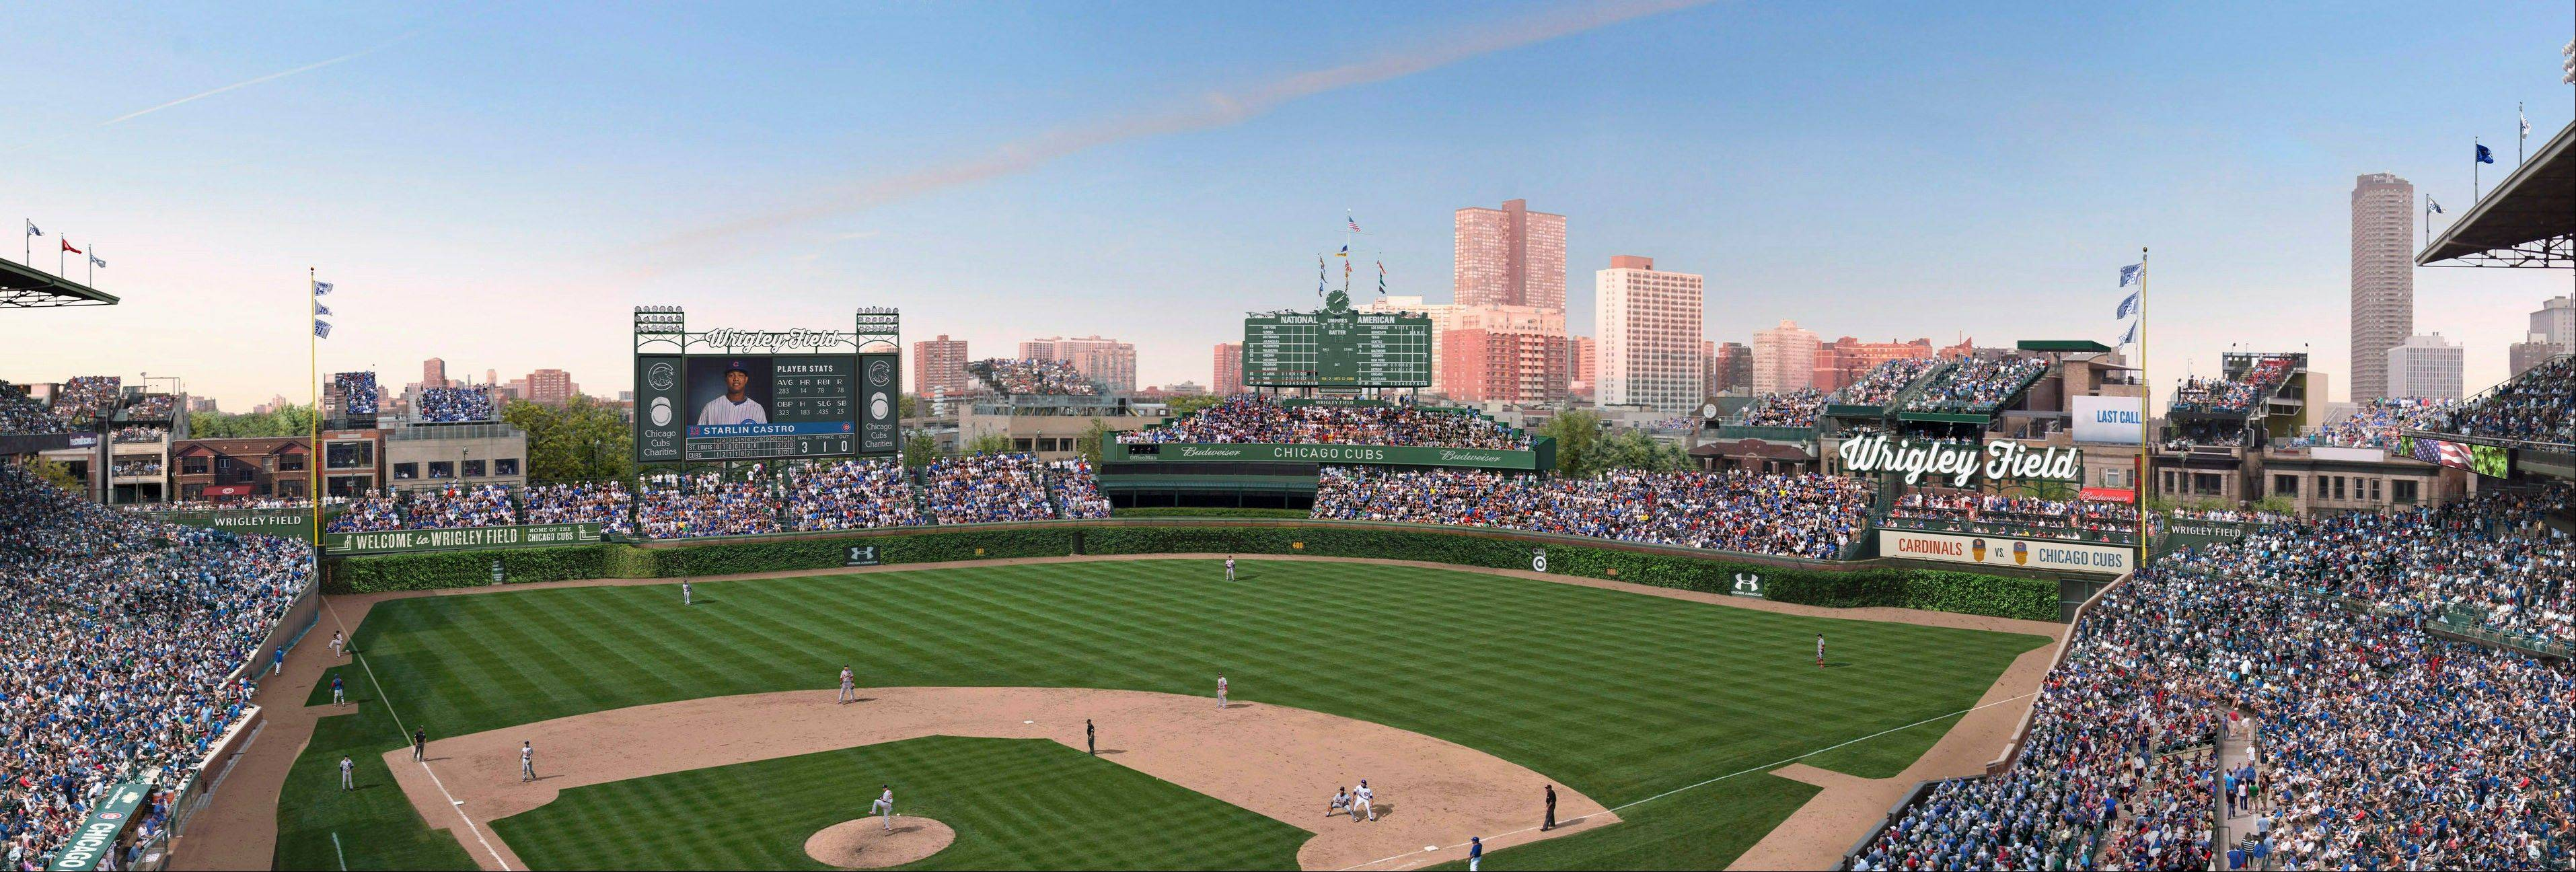 Bricks, ivy, Jumbotron: Wrigley gets $500M upgrade